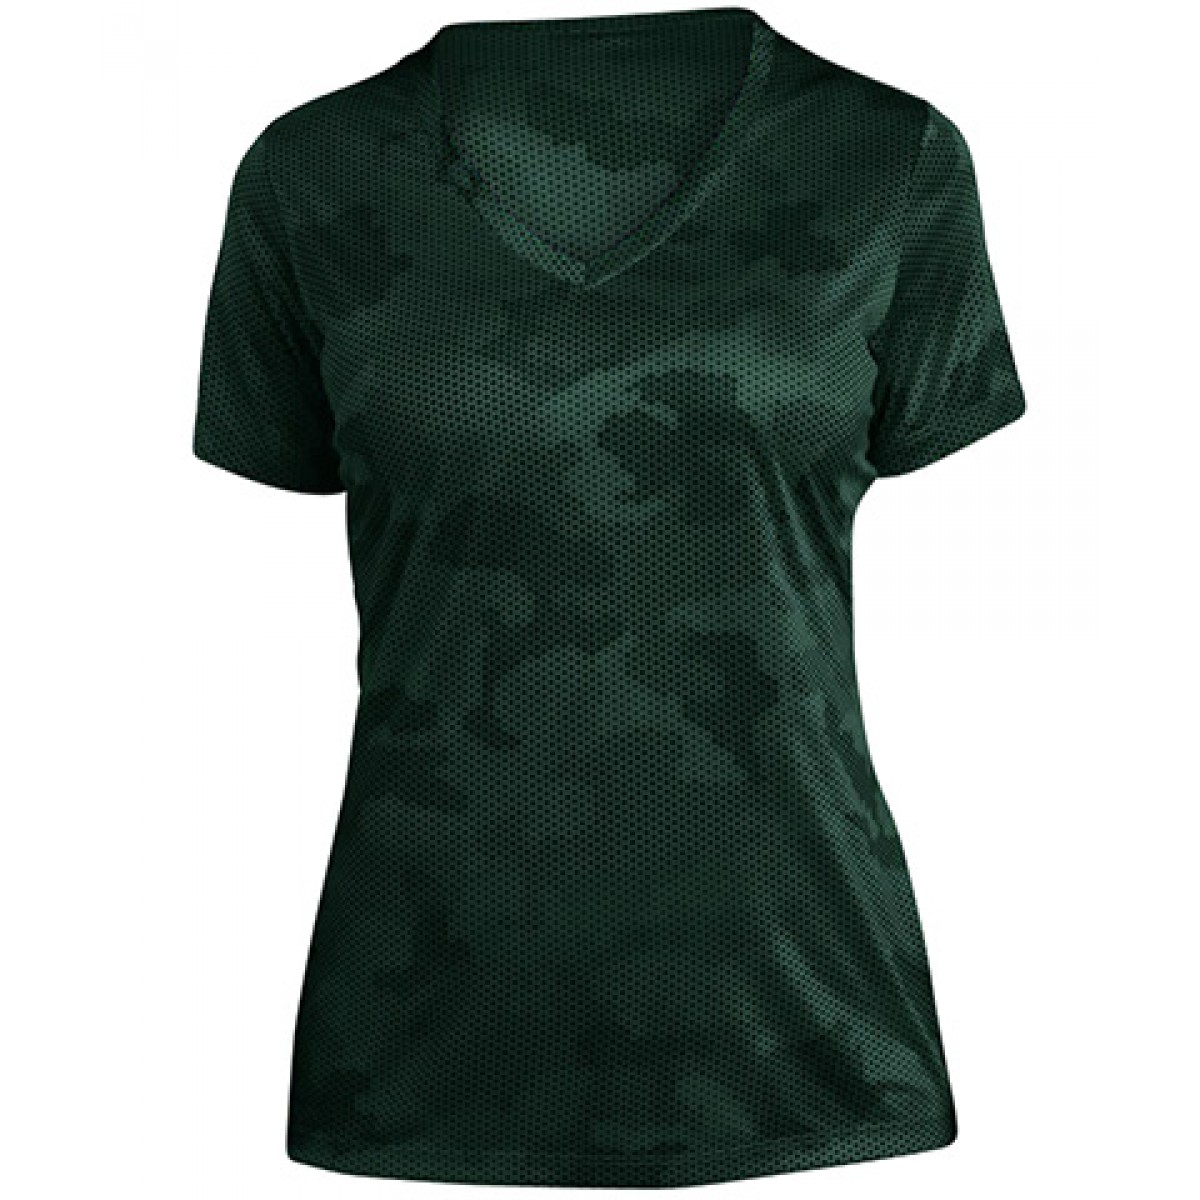 Ladies CamoHex V-Neck Tee-Green-S